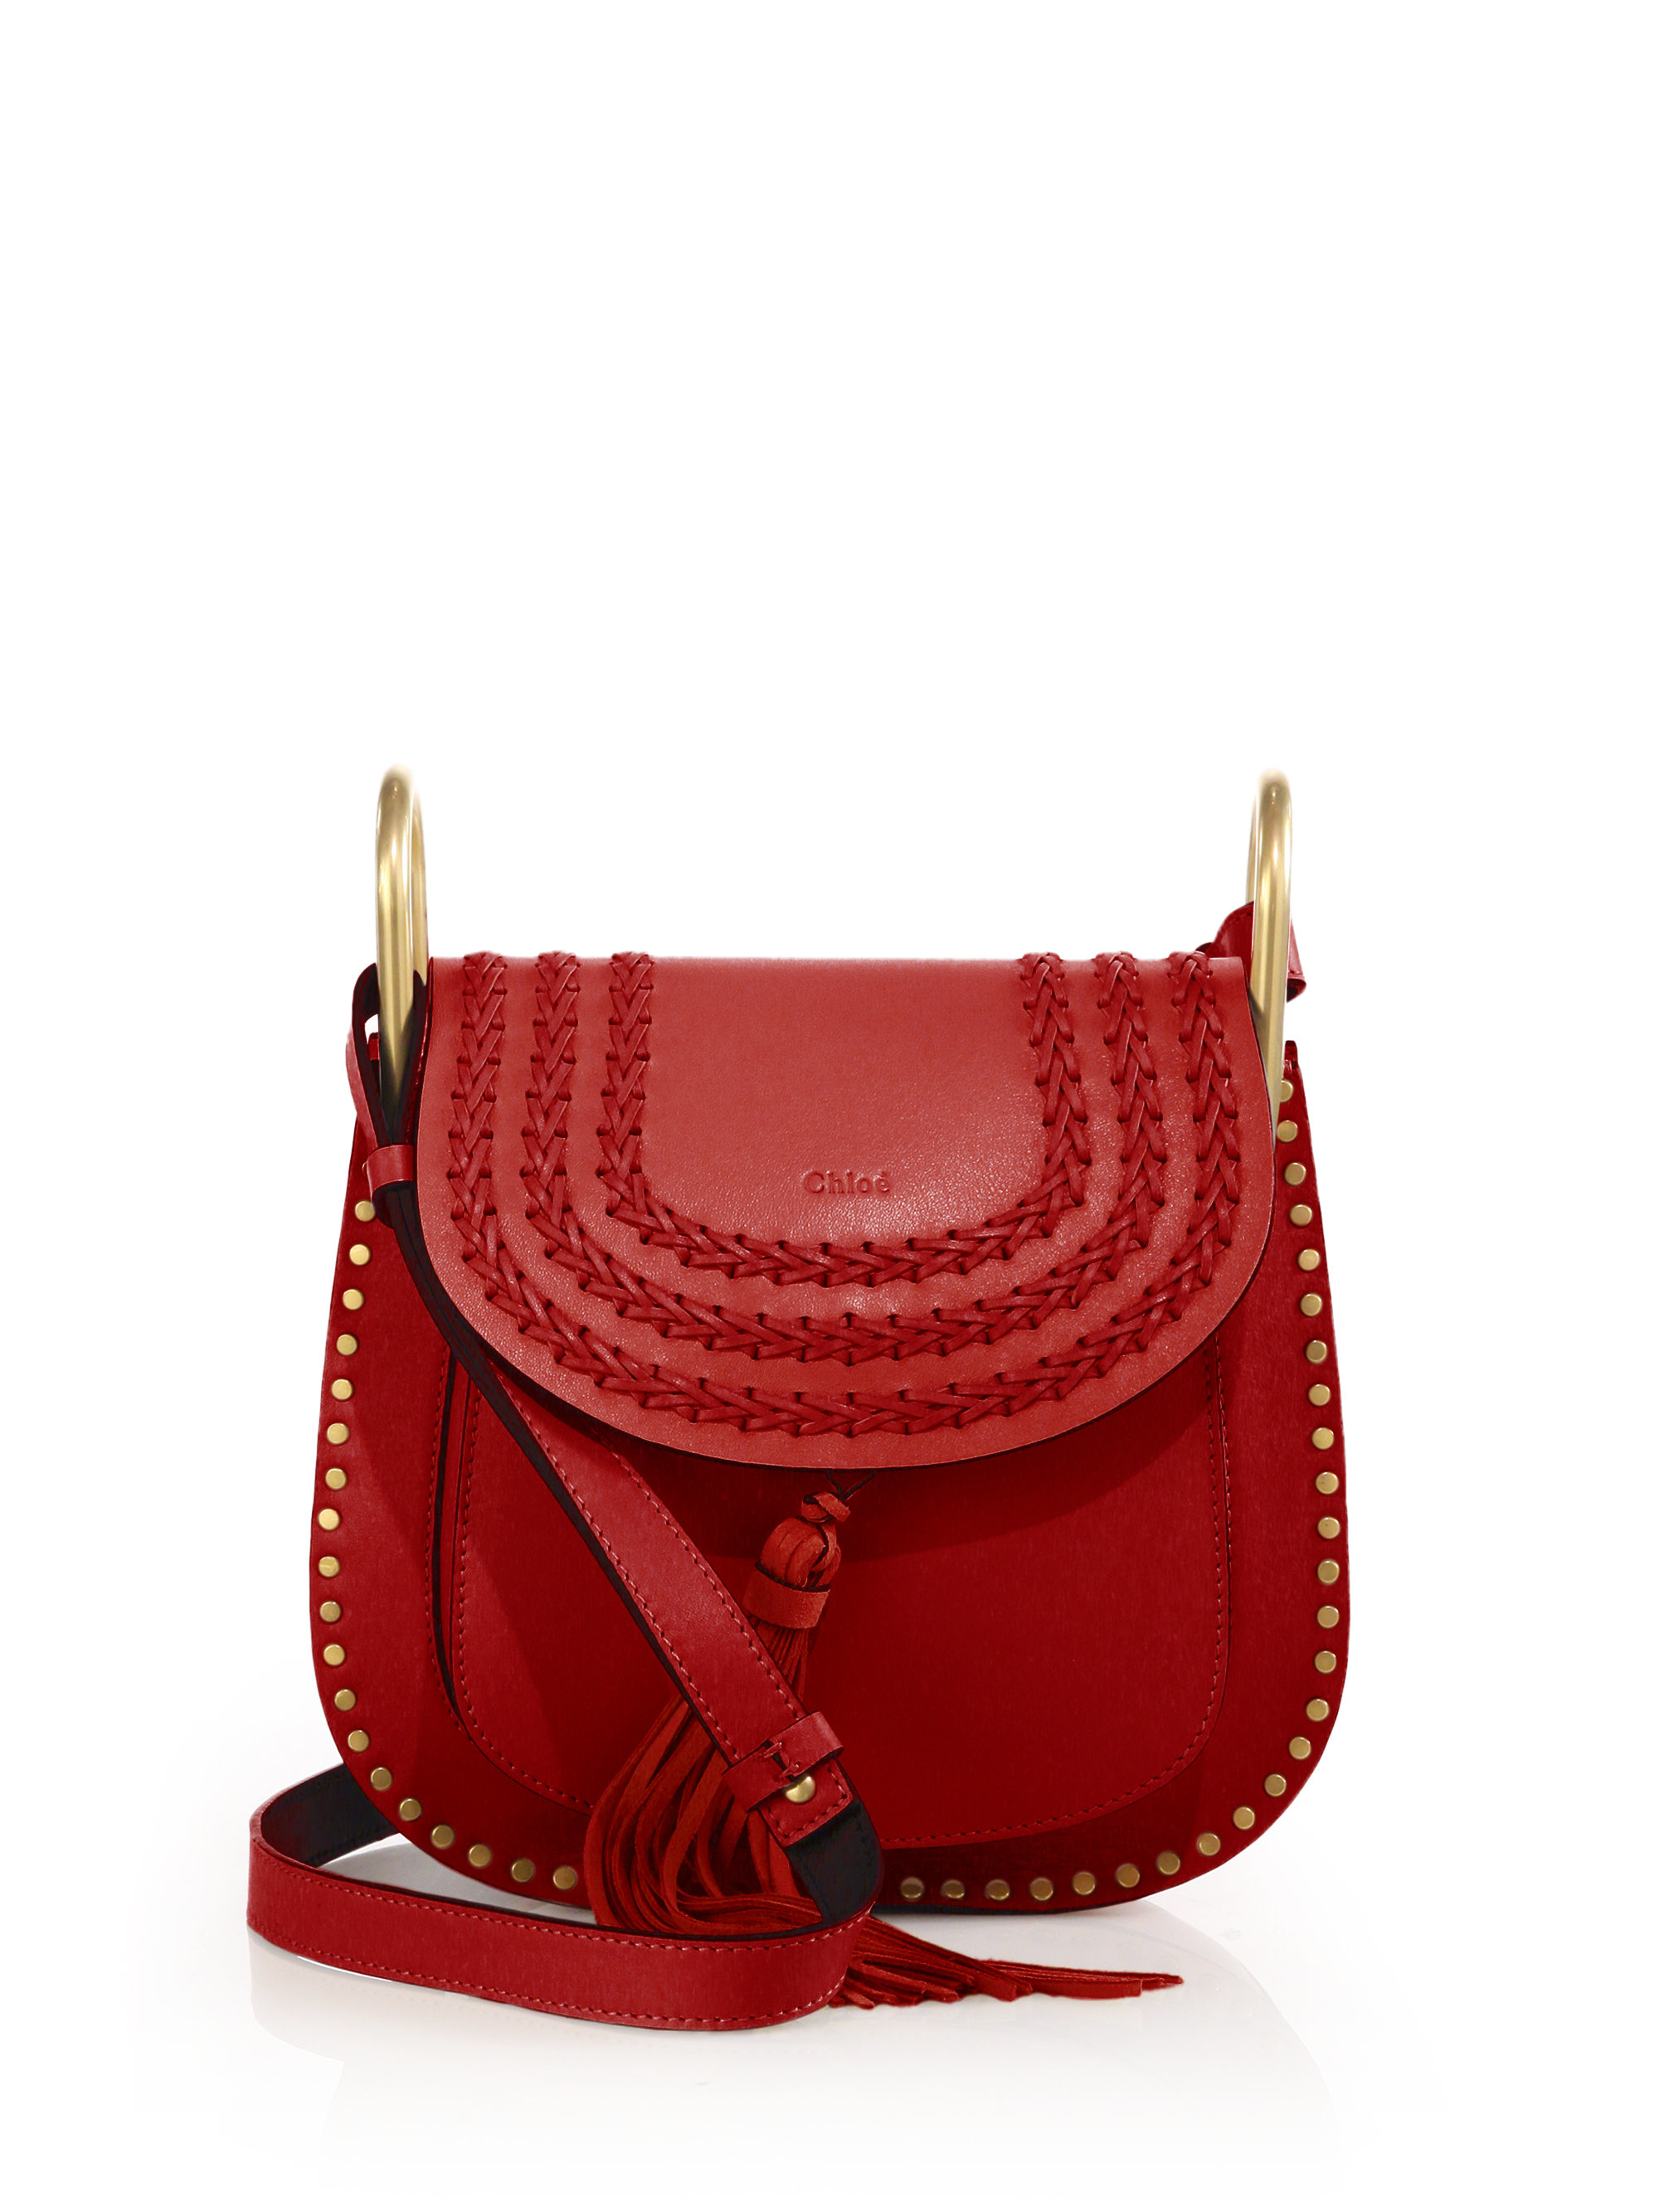 see by chloe purse - chloe hudson small leather shoulder bag, chloe online shopping